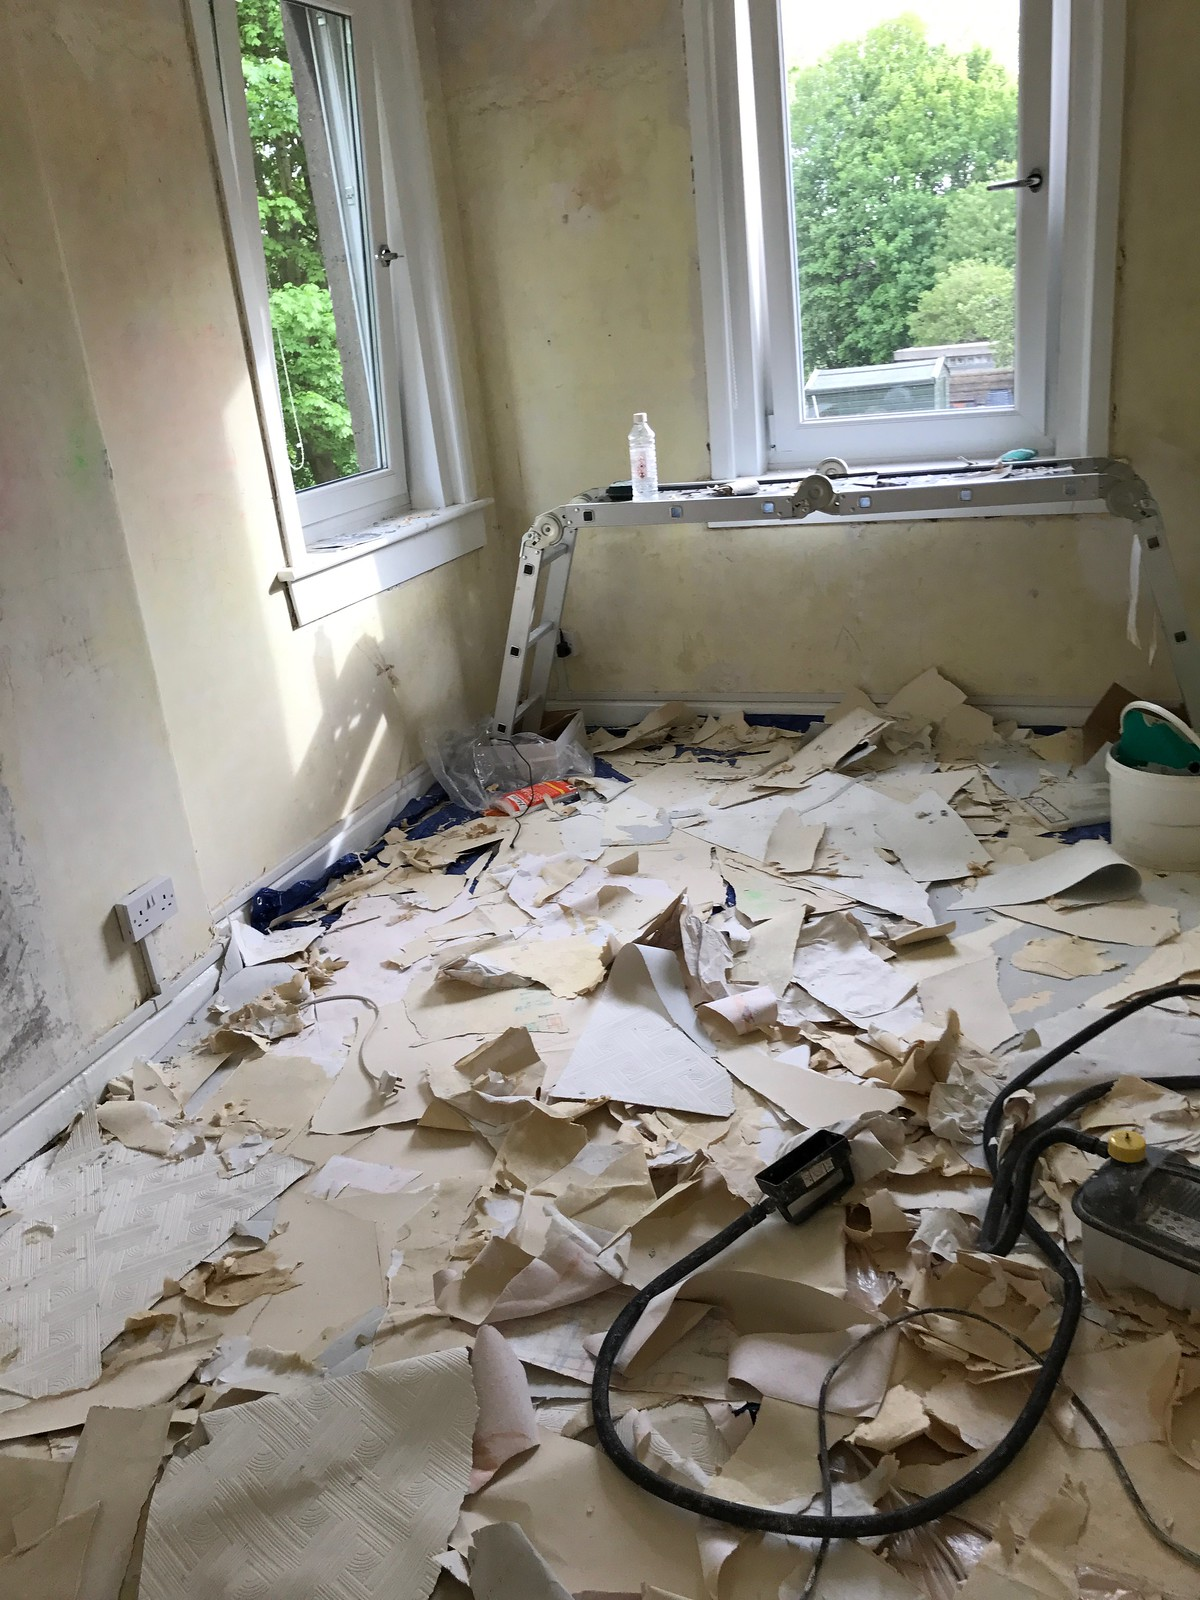 The room in a state of chaos, with stripped wallpaper littering the floor, and decorating equipment amongst the mess.